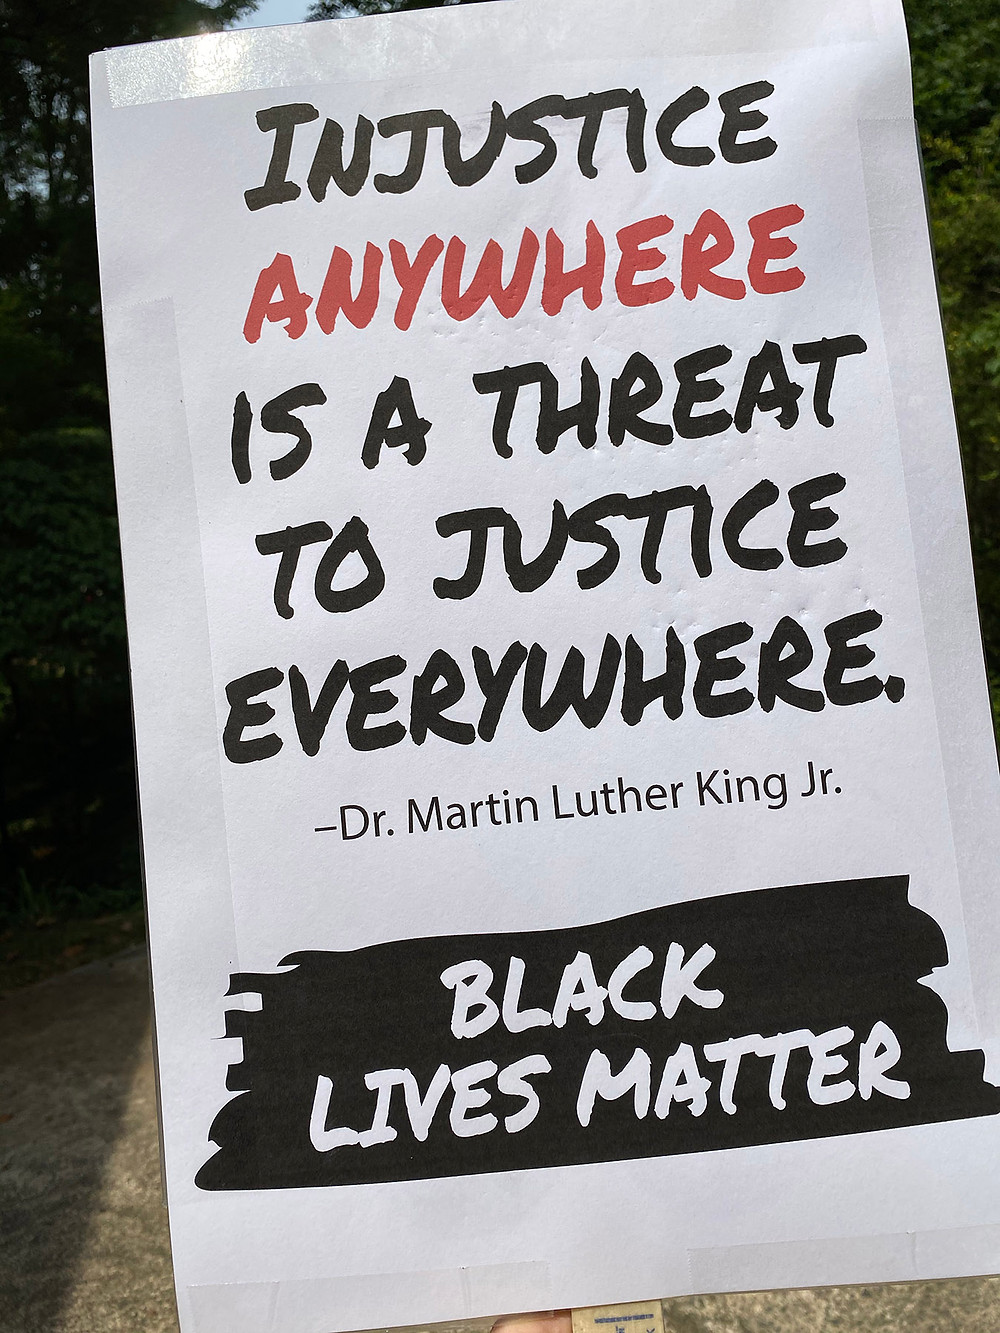 """Injustice anywhere is a threat to justice everywhere."" –Dr. Martin Luther King Jr."